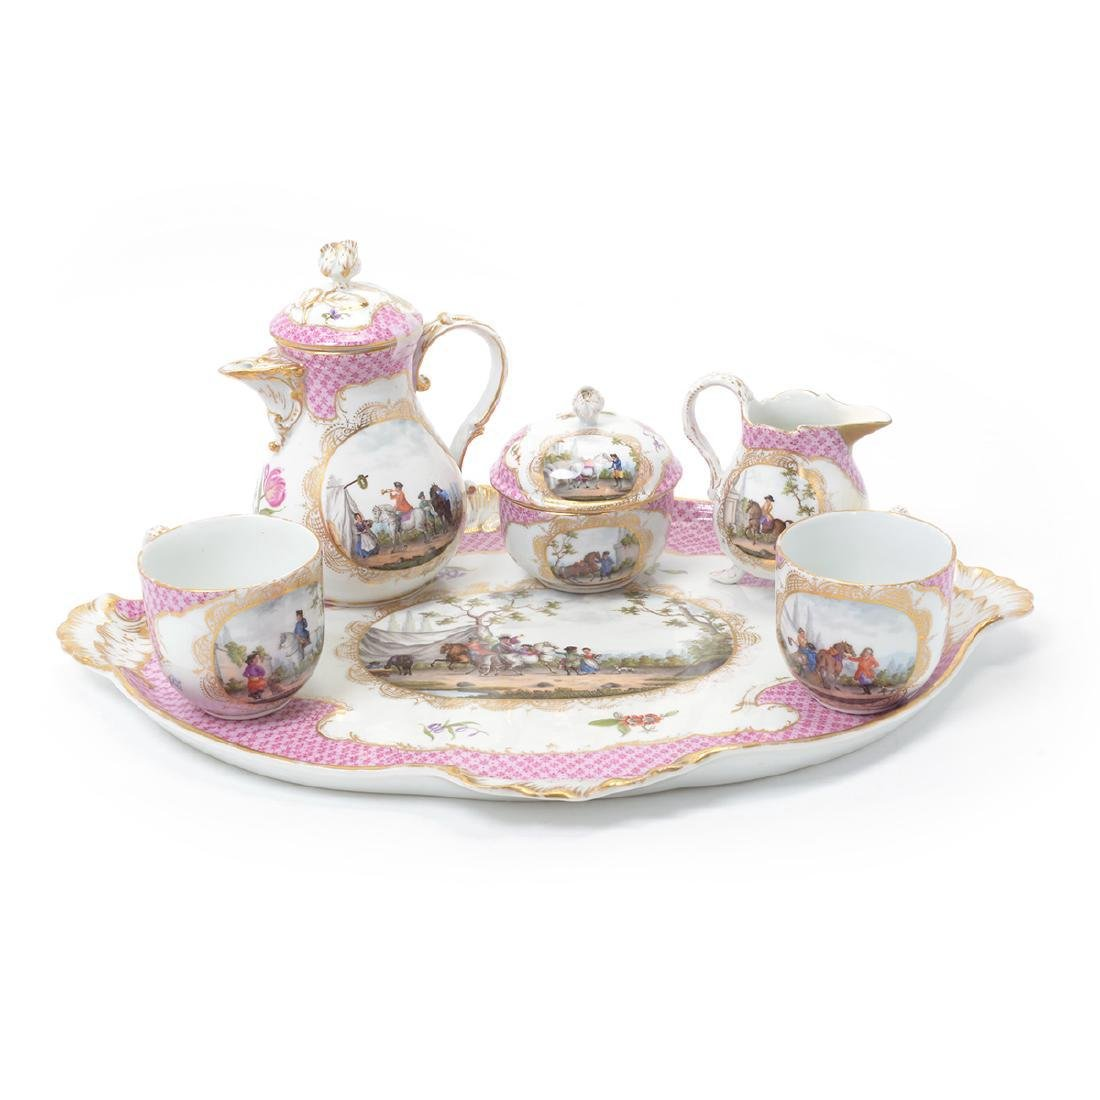 Meissen Six Piece Porcelain Tea Service including Tray